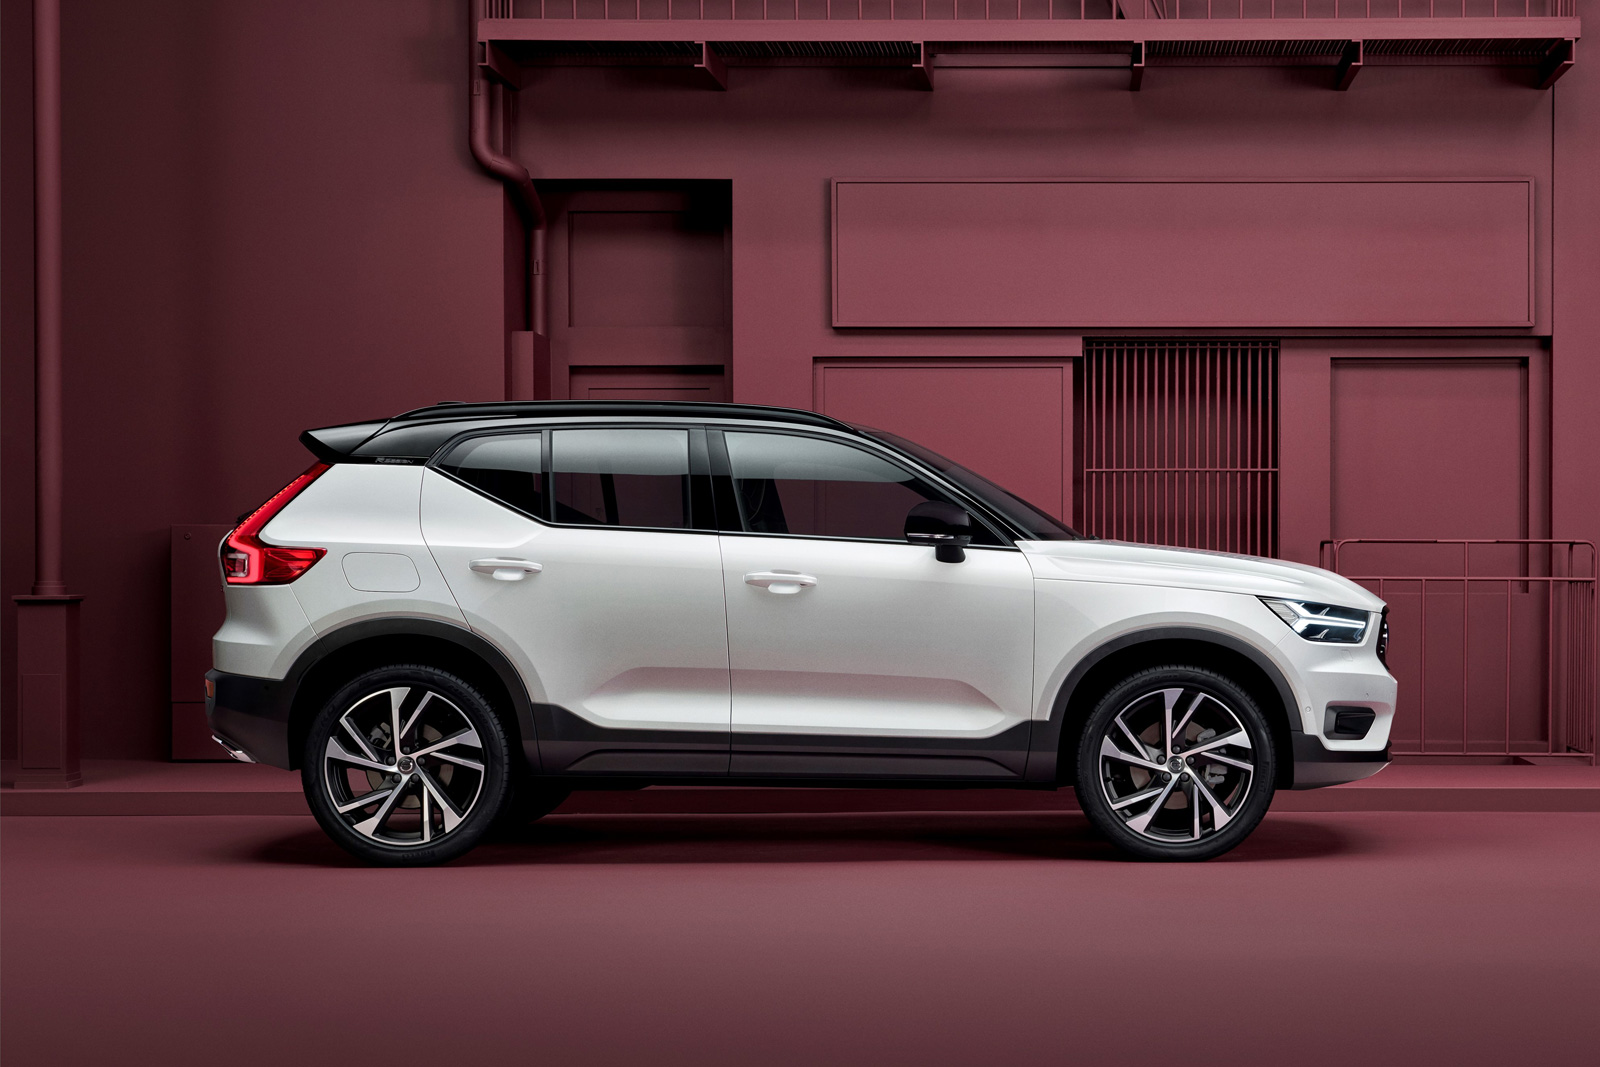 volvo-xc40-red-background.jpg